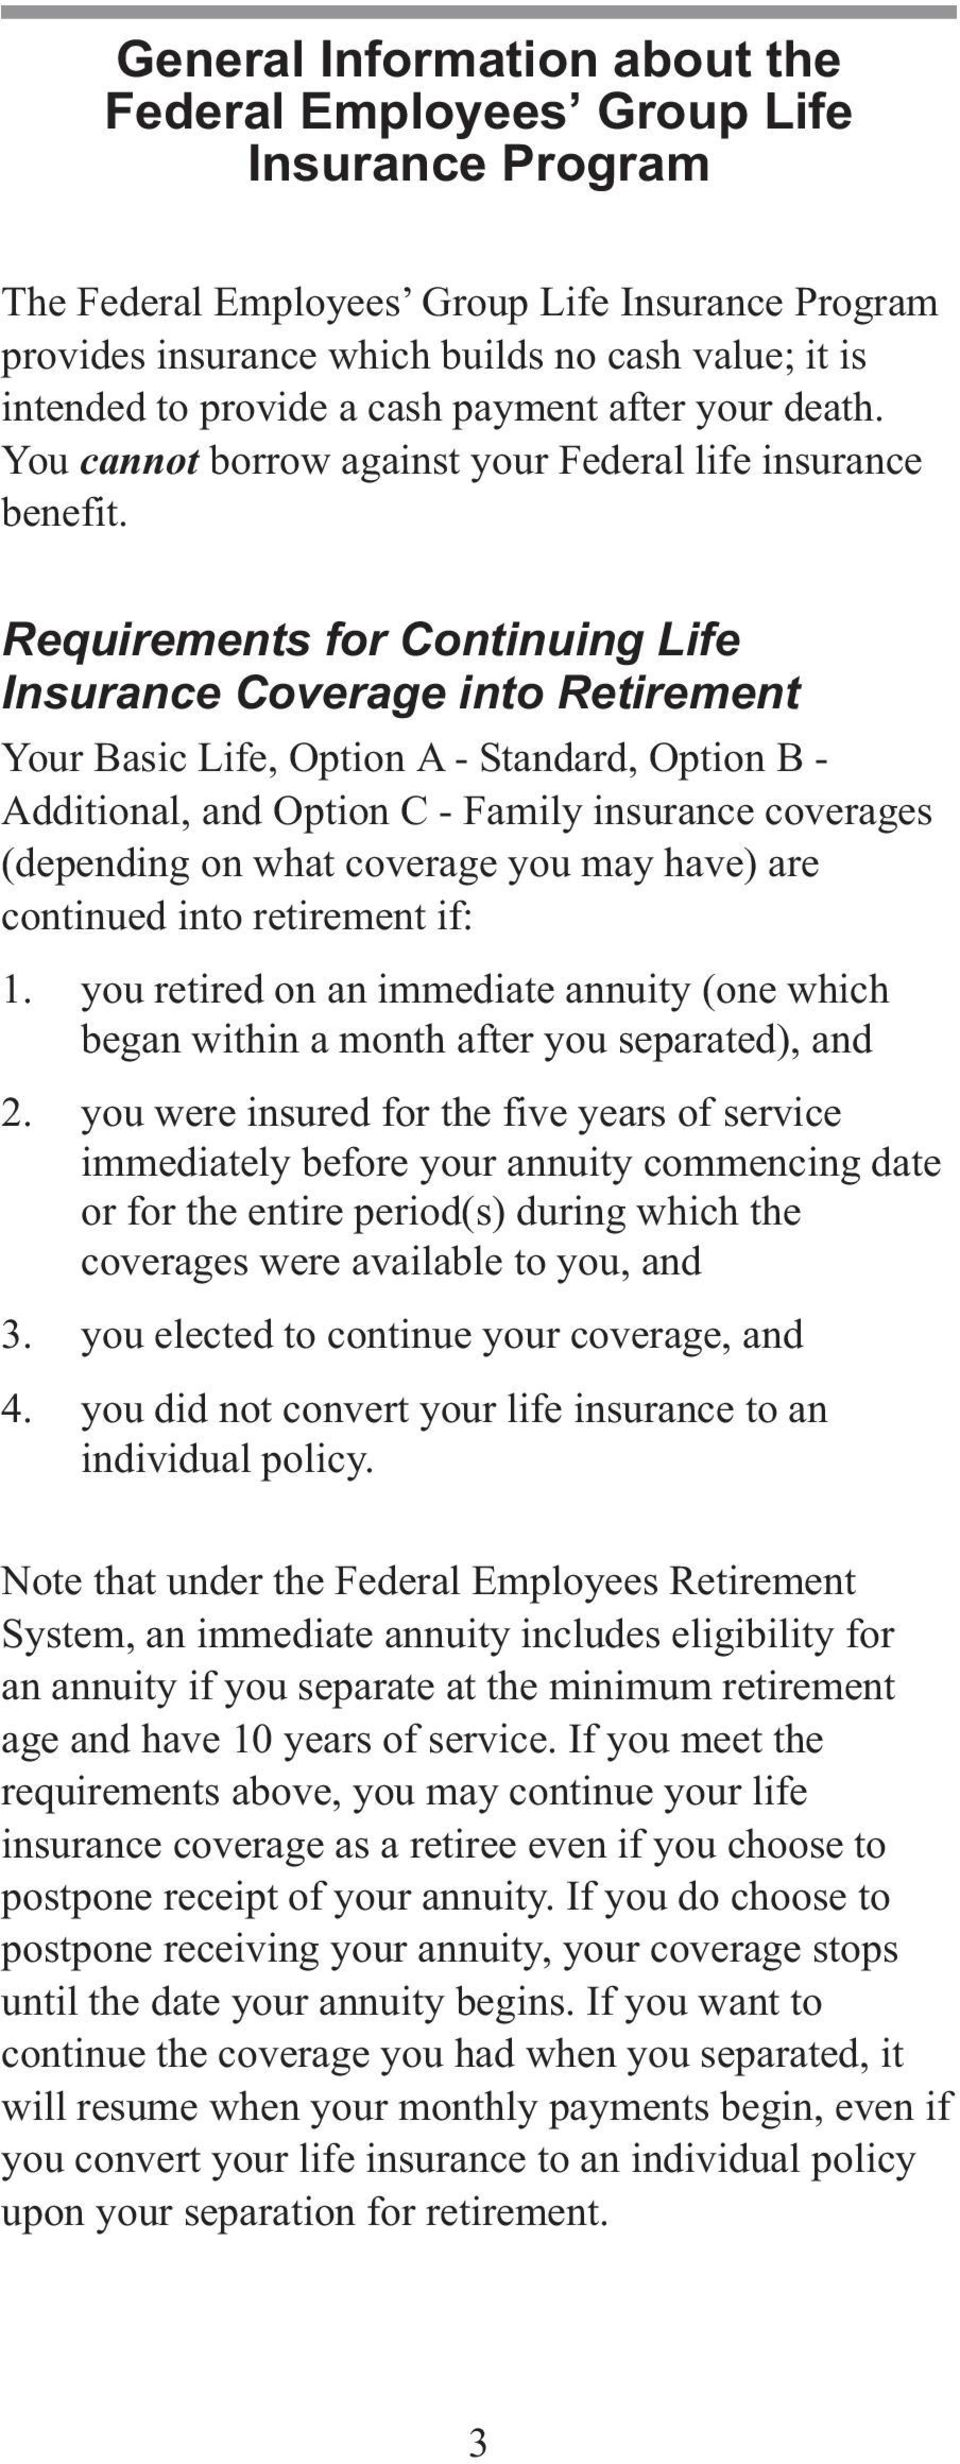 Requirements for Continuing Life Insurance Coverage into Retirement Your Basic Life, Option A - Standard, Option B Additional, and Option C - Family insurance coverages (depending on what coverage